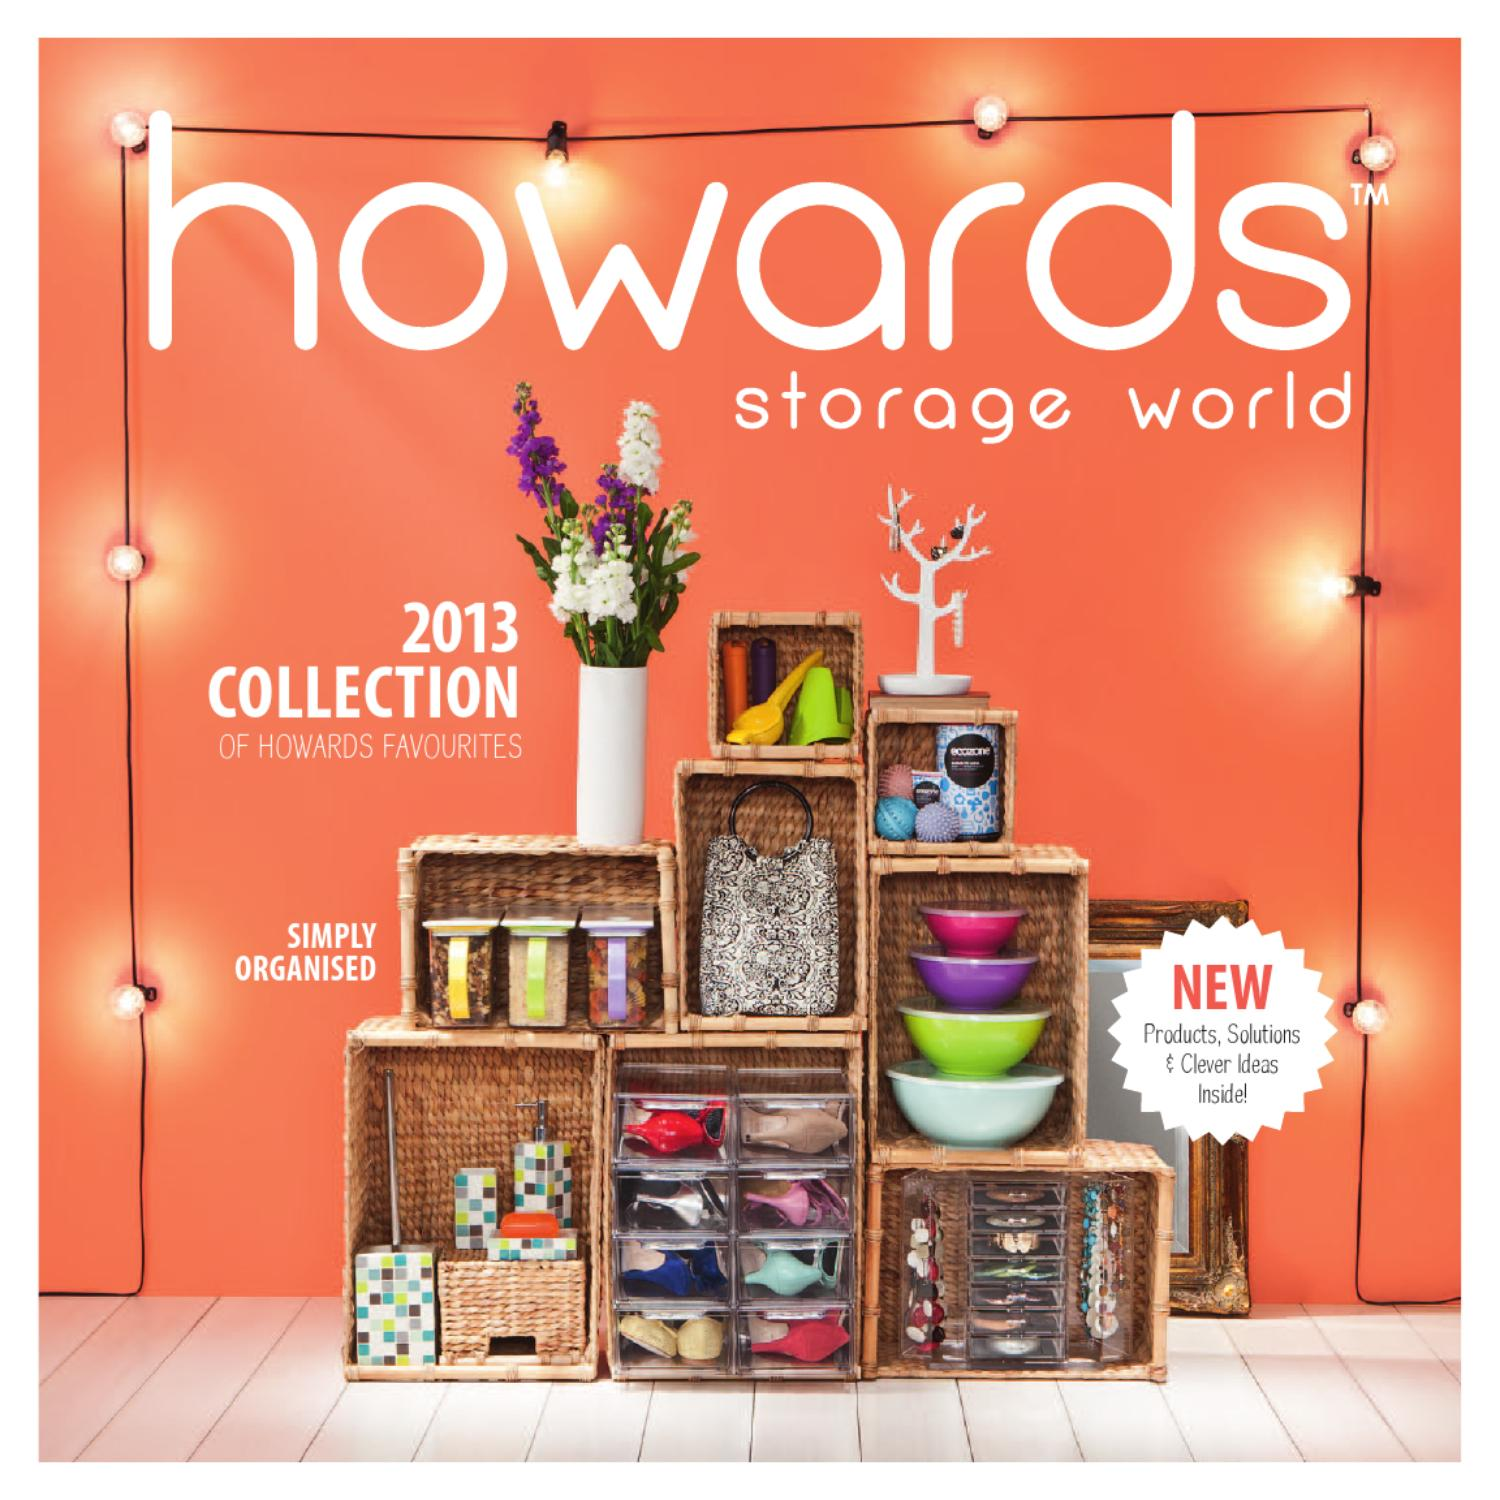 Top tips to follow when storing large bits of metal most - Howards storage ...